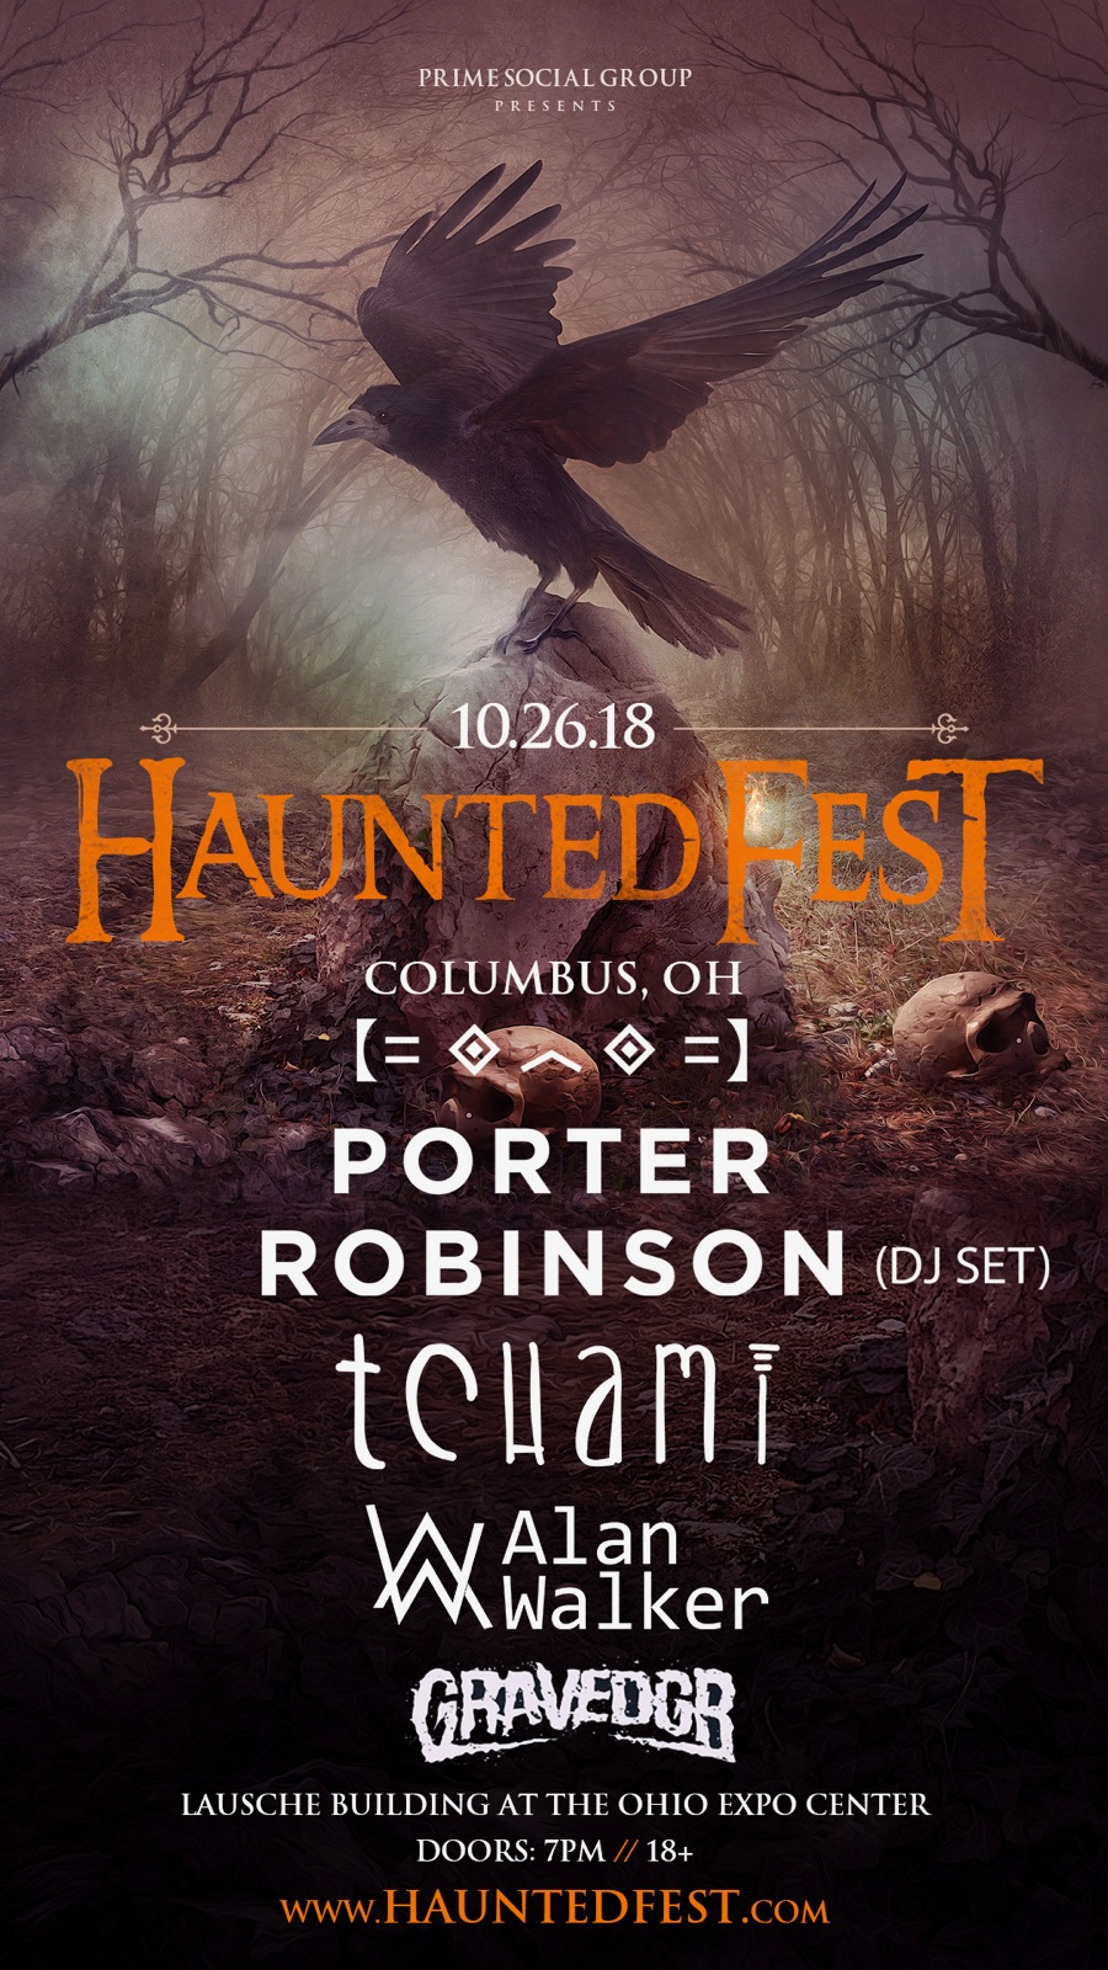 Tchami + Alan Walker To Stack the Bill for Ohio's + Indiana's Largest Halloween Party, Haunted Fest on October 26th